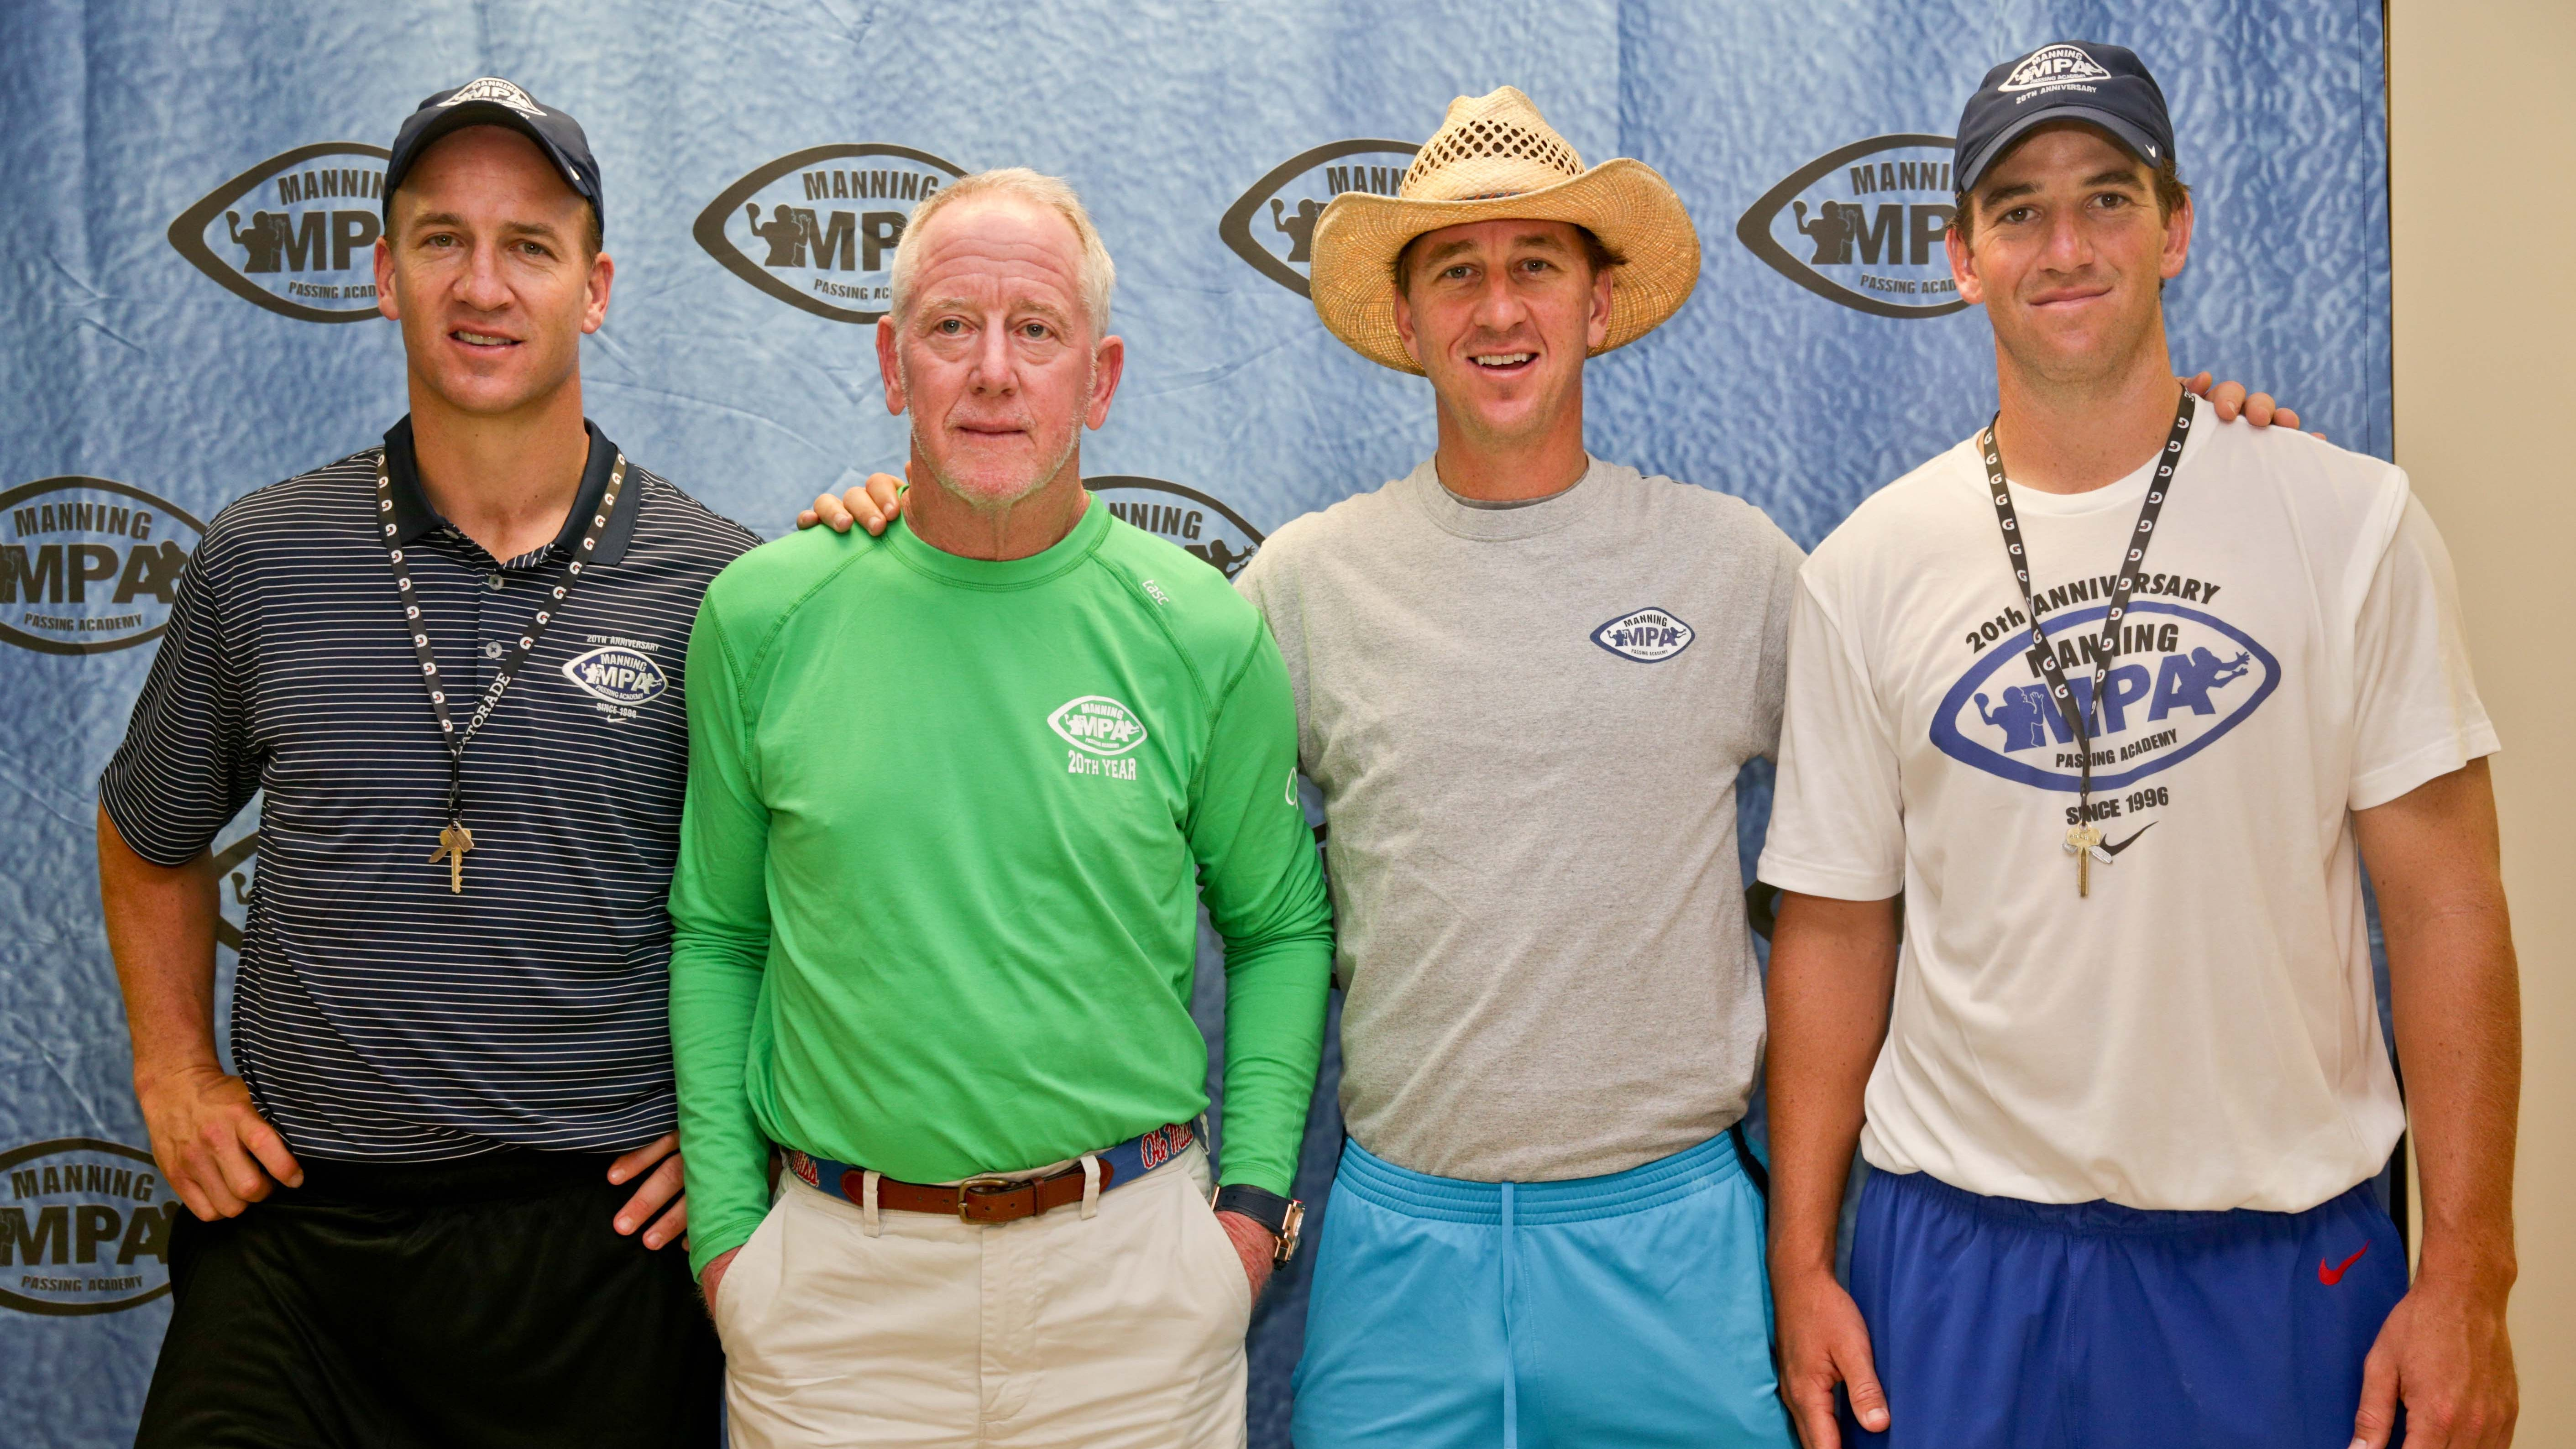 Peyton Manning, Archie Manning, Cooper Manning and Eli Manning pose for a group photo at a press conference at the Manning Passing Academy.